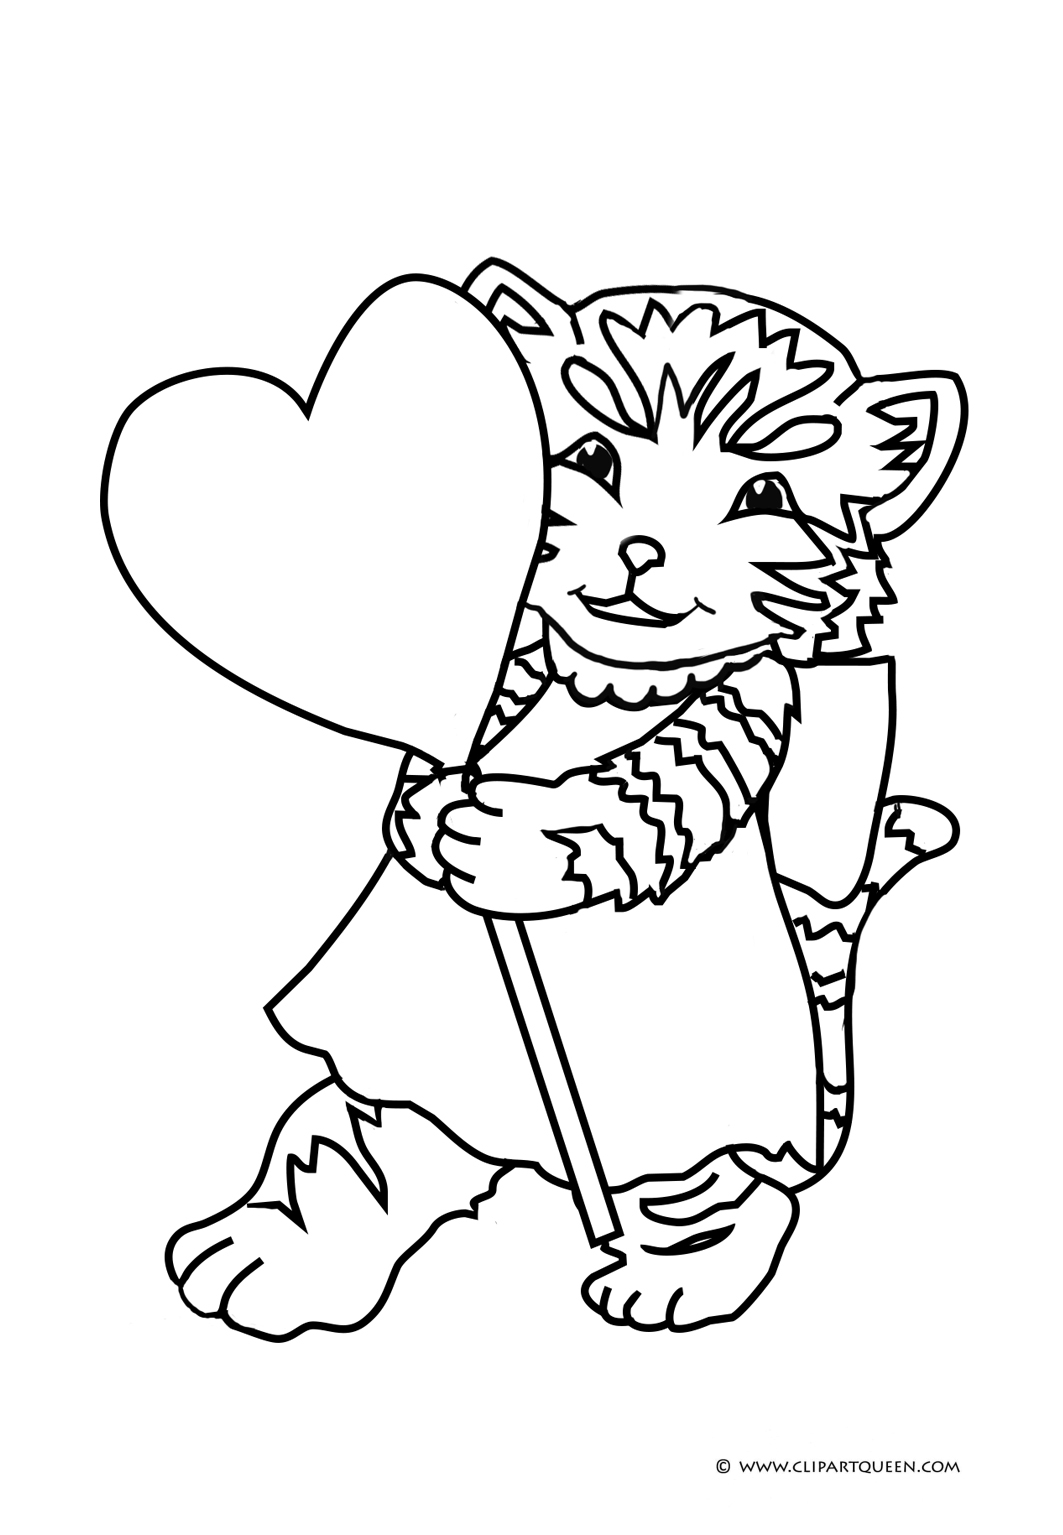 Coloring page for kids for Valentine